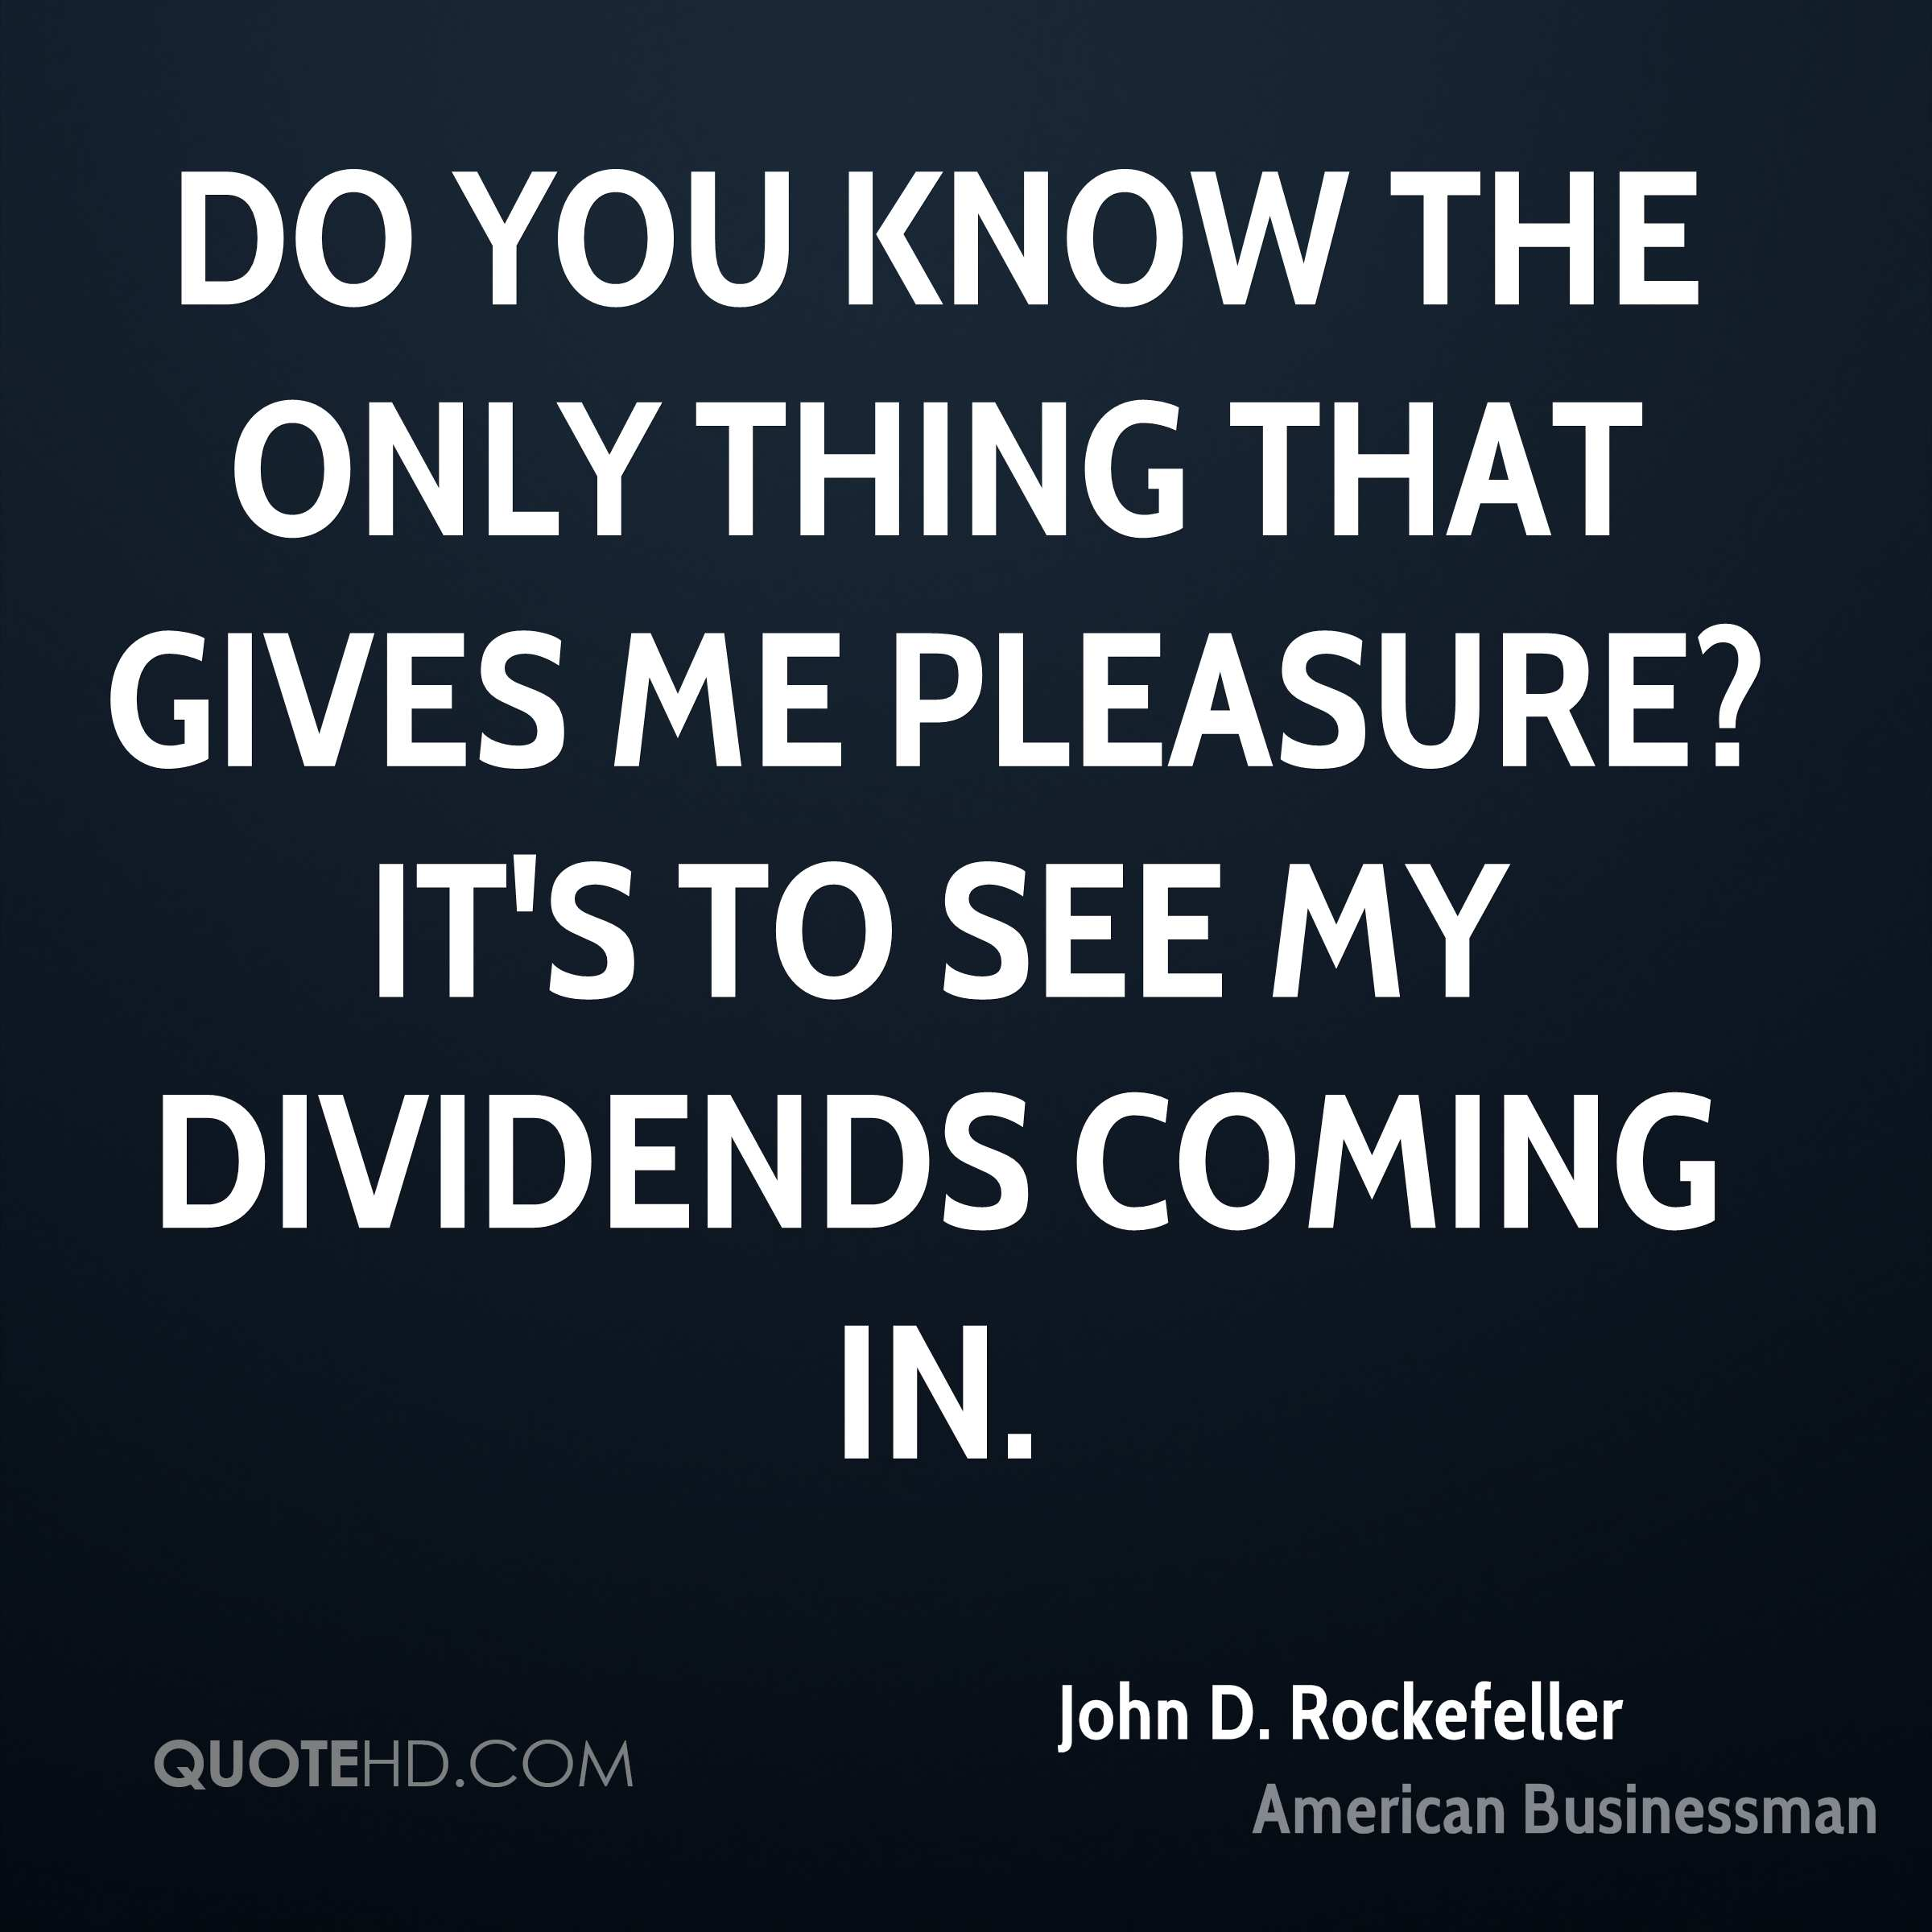 Do you know the only thing that gives me pleasure? It's to see my dividends coming in.